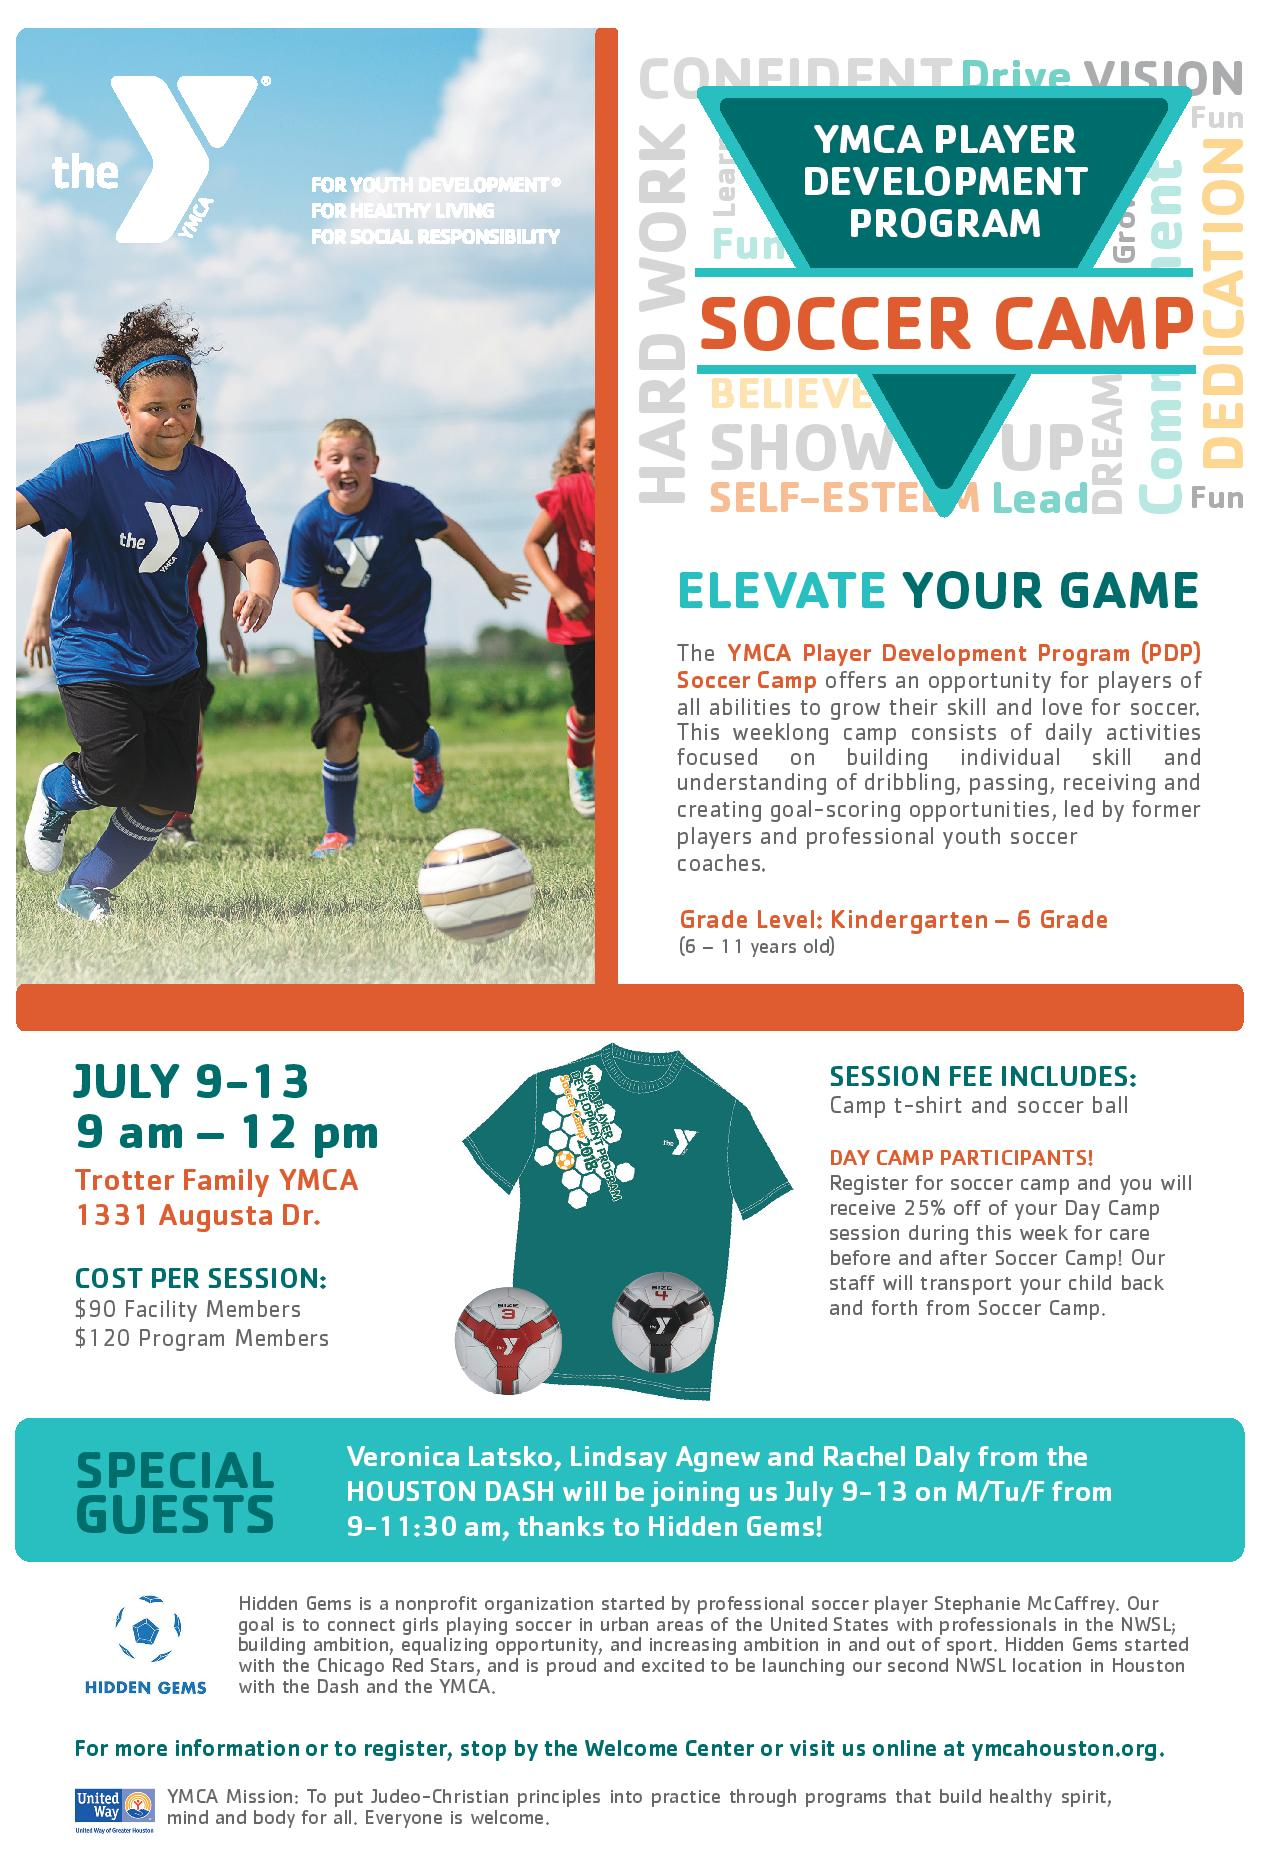 Marketing Flyer for Hidden Gems/ YMCA summer camp collaboration